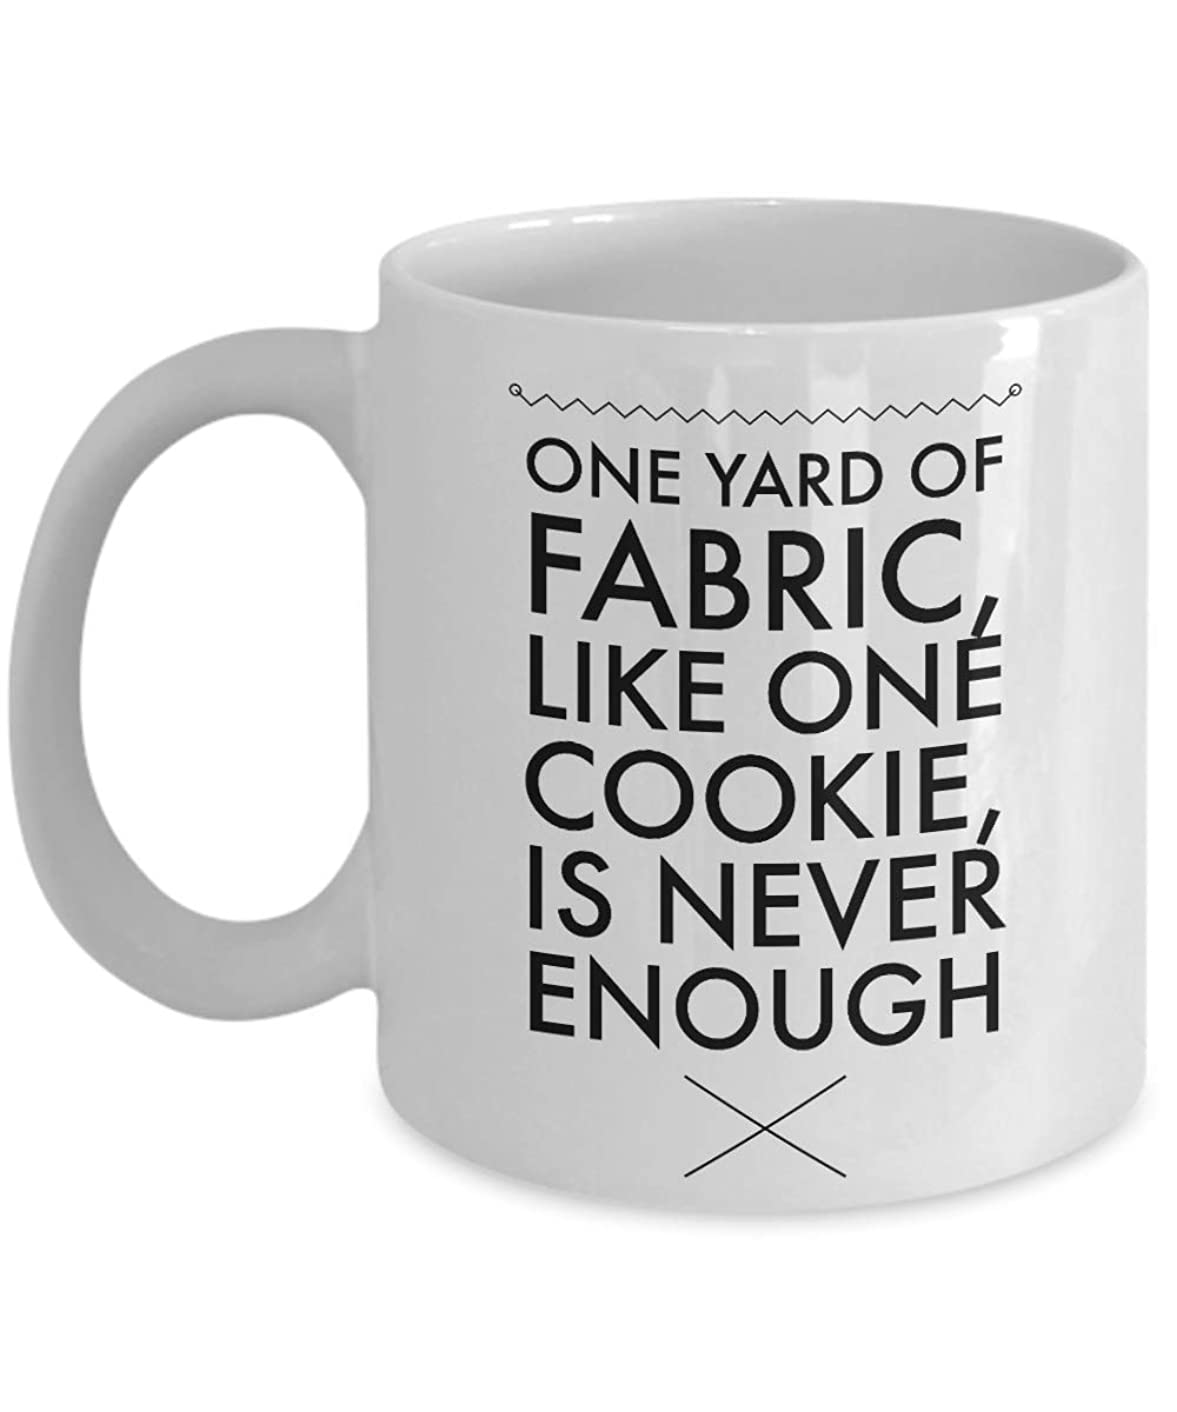 Sewing Quilting One Yard of Fabric Unique Gifts Funny Coffee Mug